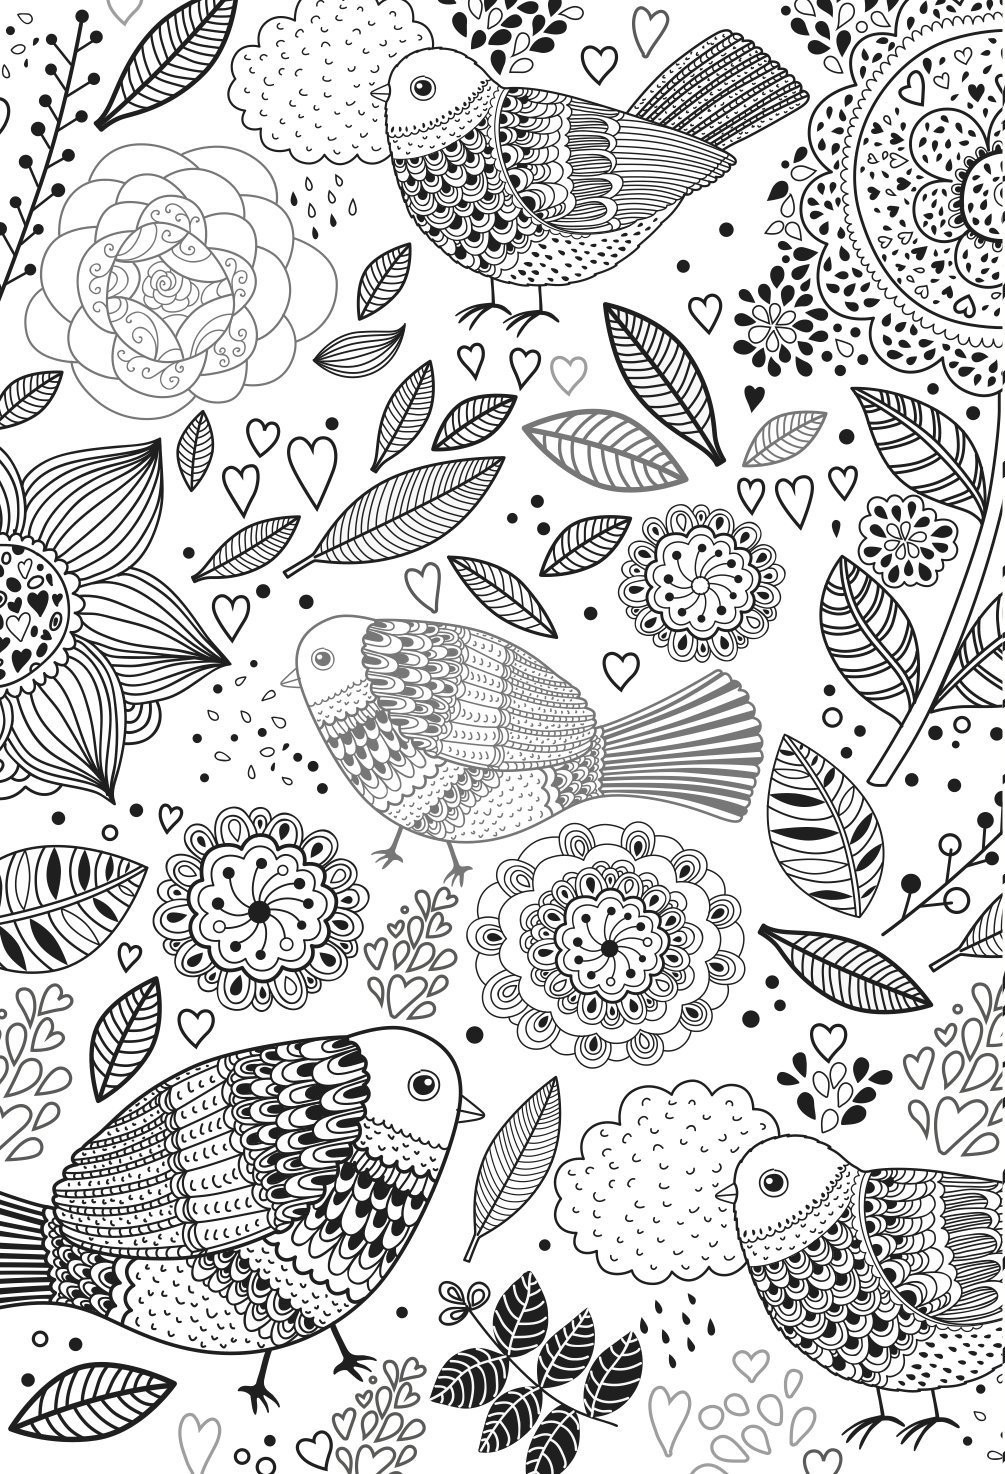 Best ideas about Coloring Books Adult . Save or Pin Colouring Books for Adults In The Playroom Now.